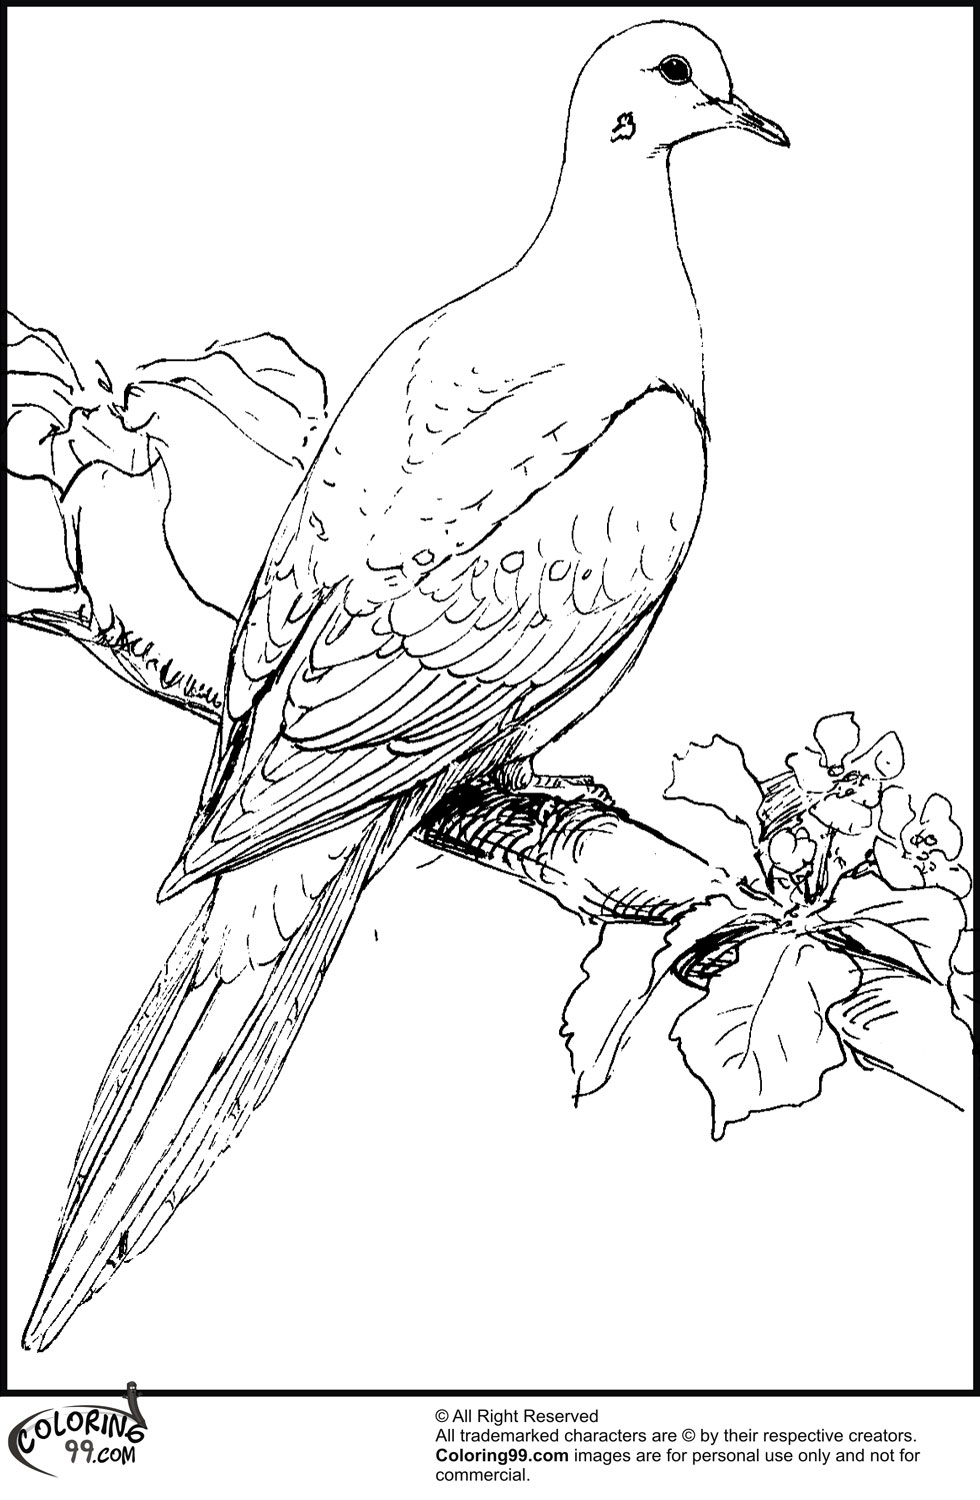 doves coloring pages turtle dove coloring download turtle dove coloring for pages doves coloring